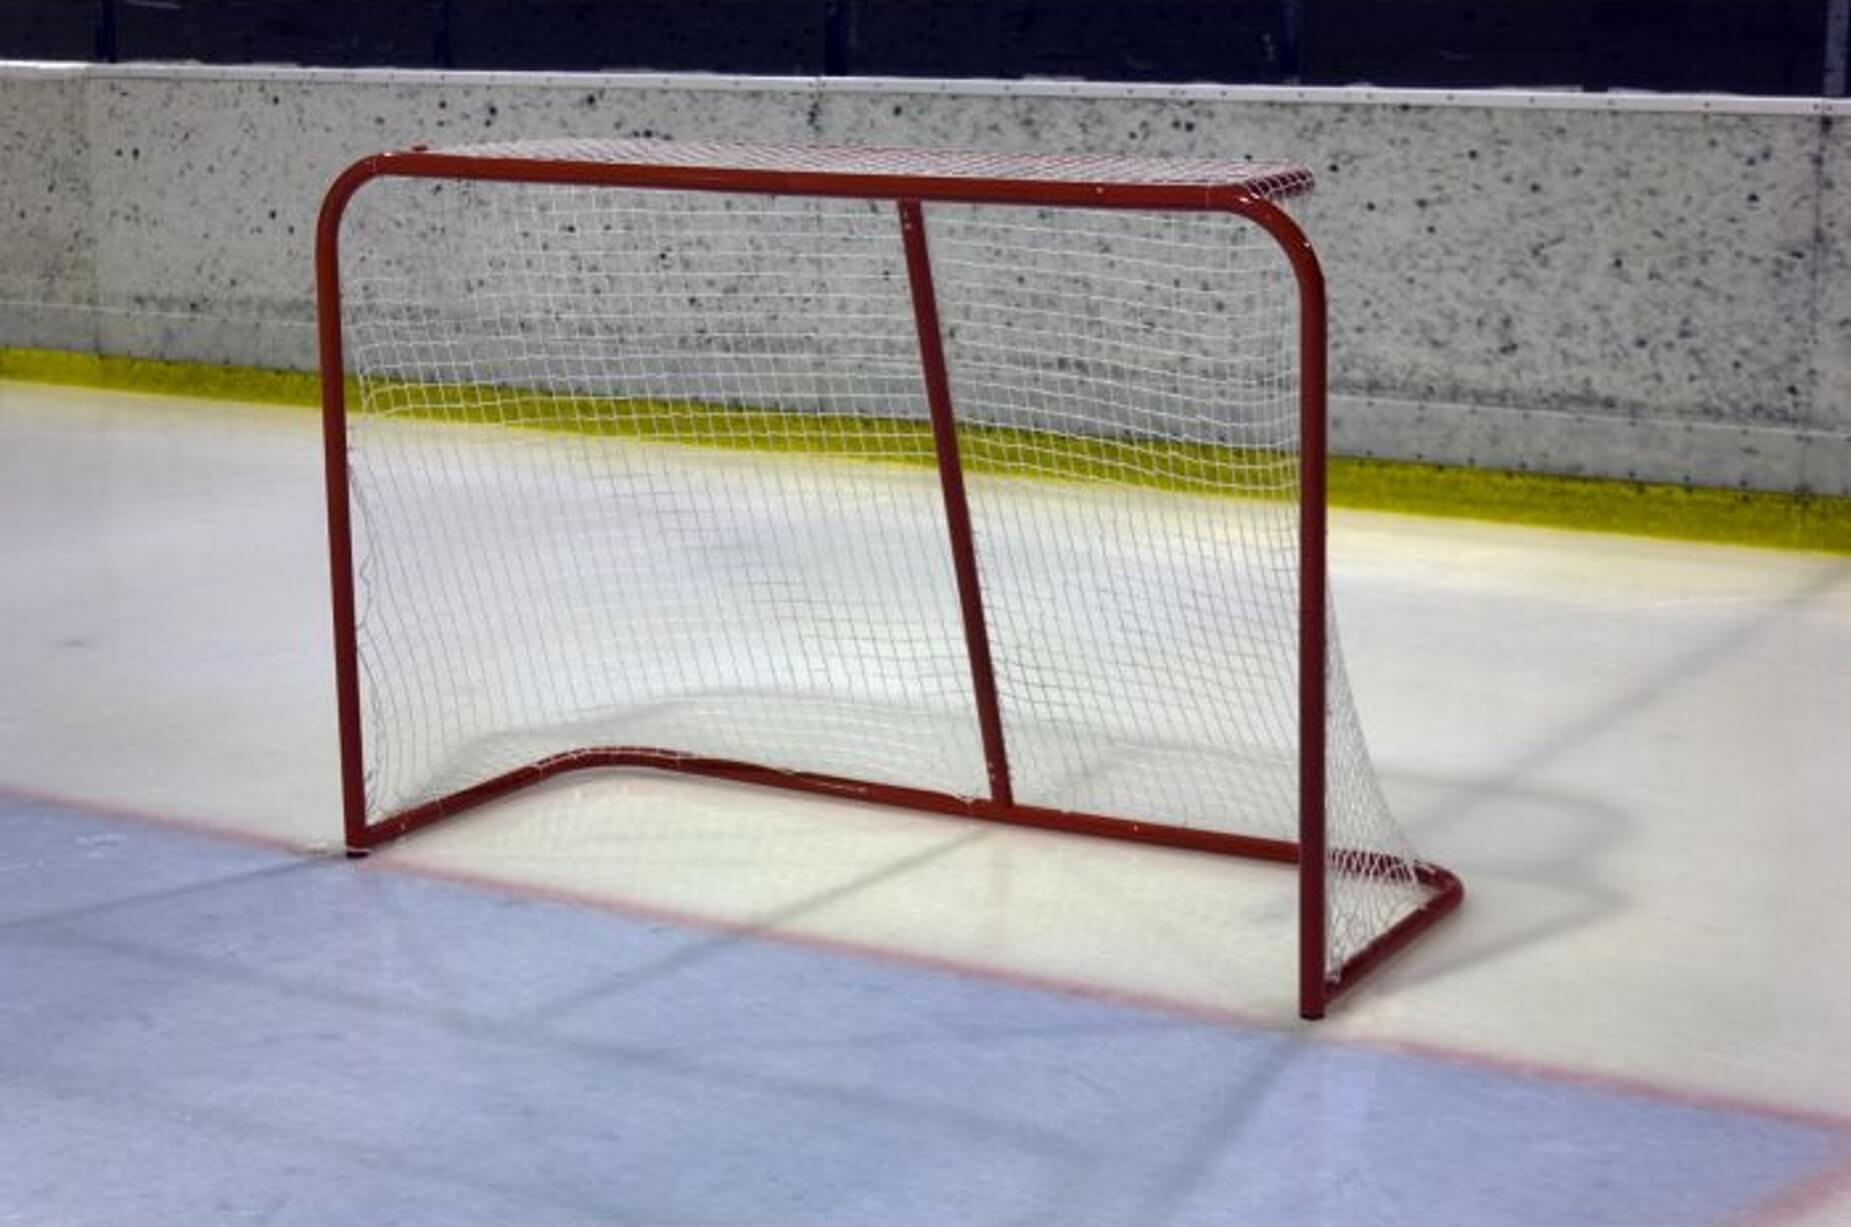 ProSport Ice Hockey Goal Official